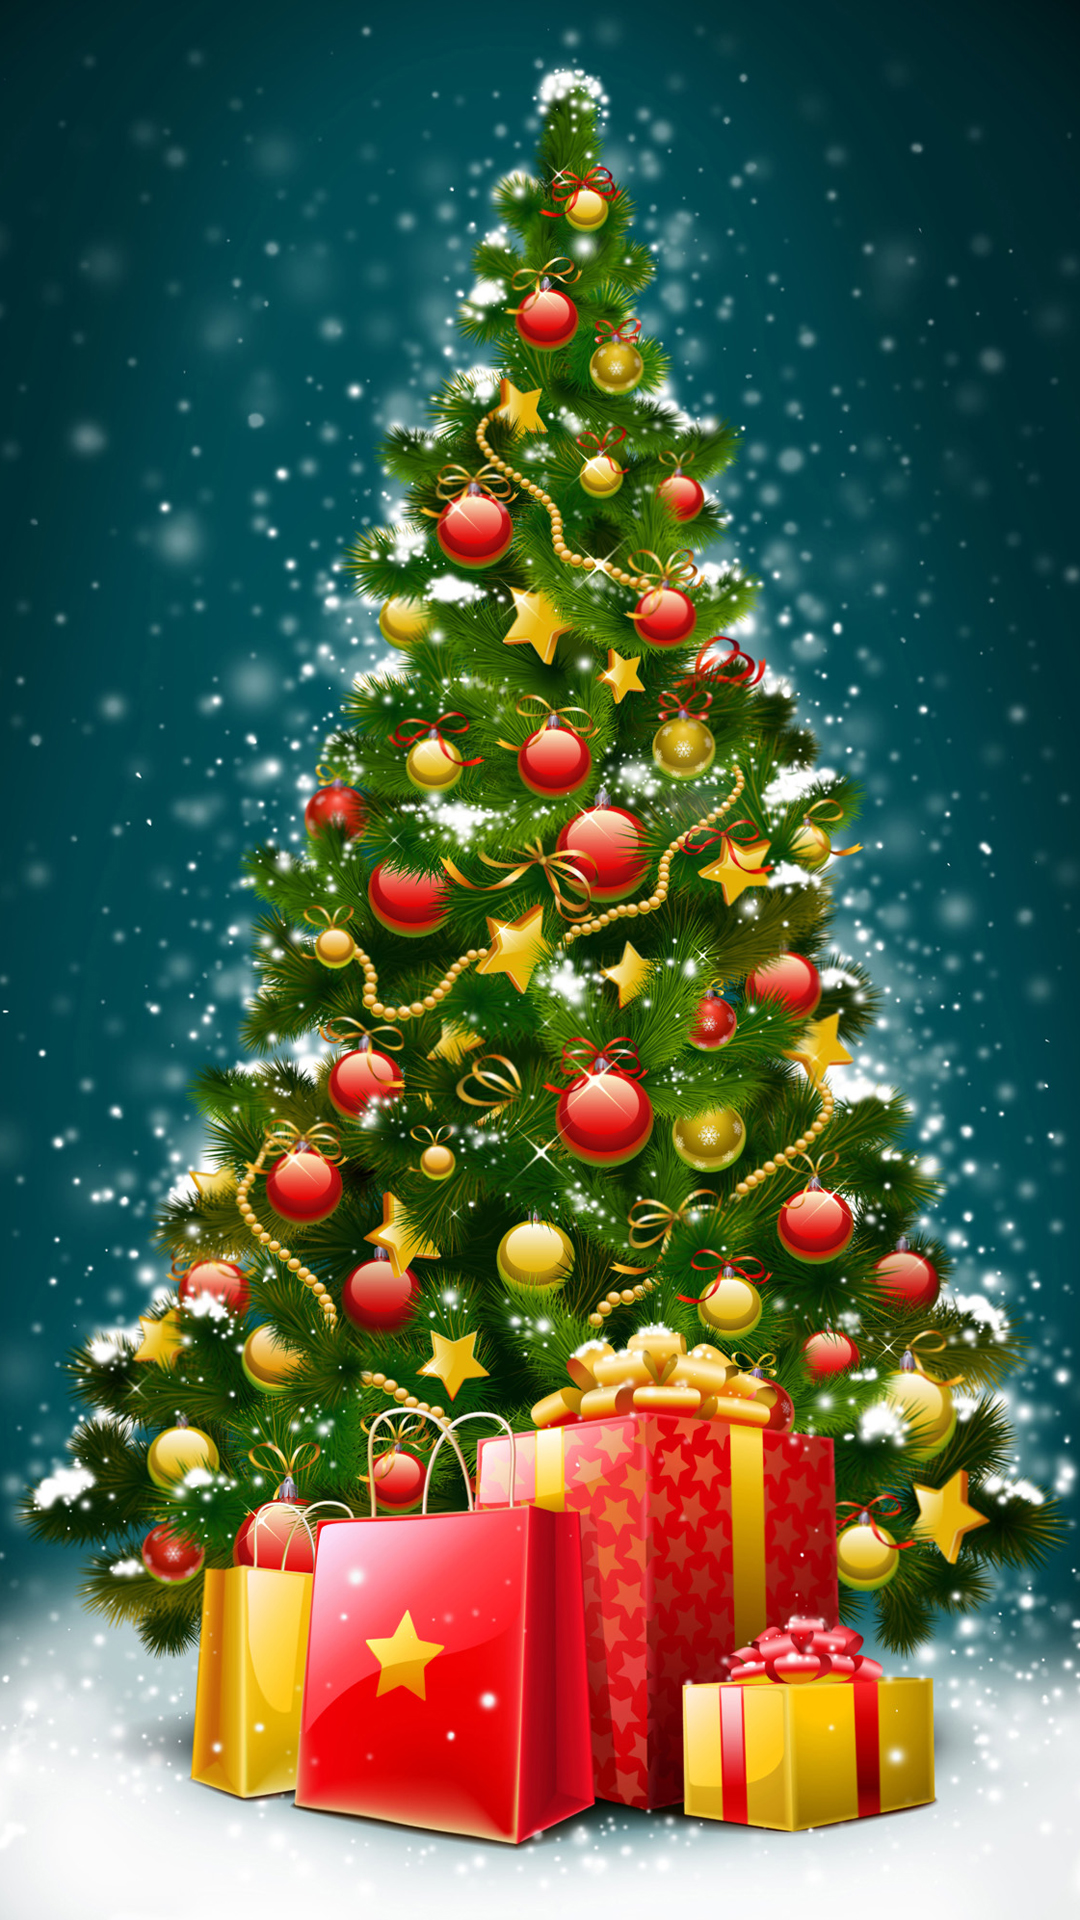 Beautiful Christmas Tree Htc One Wallpaper